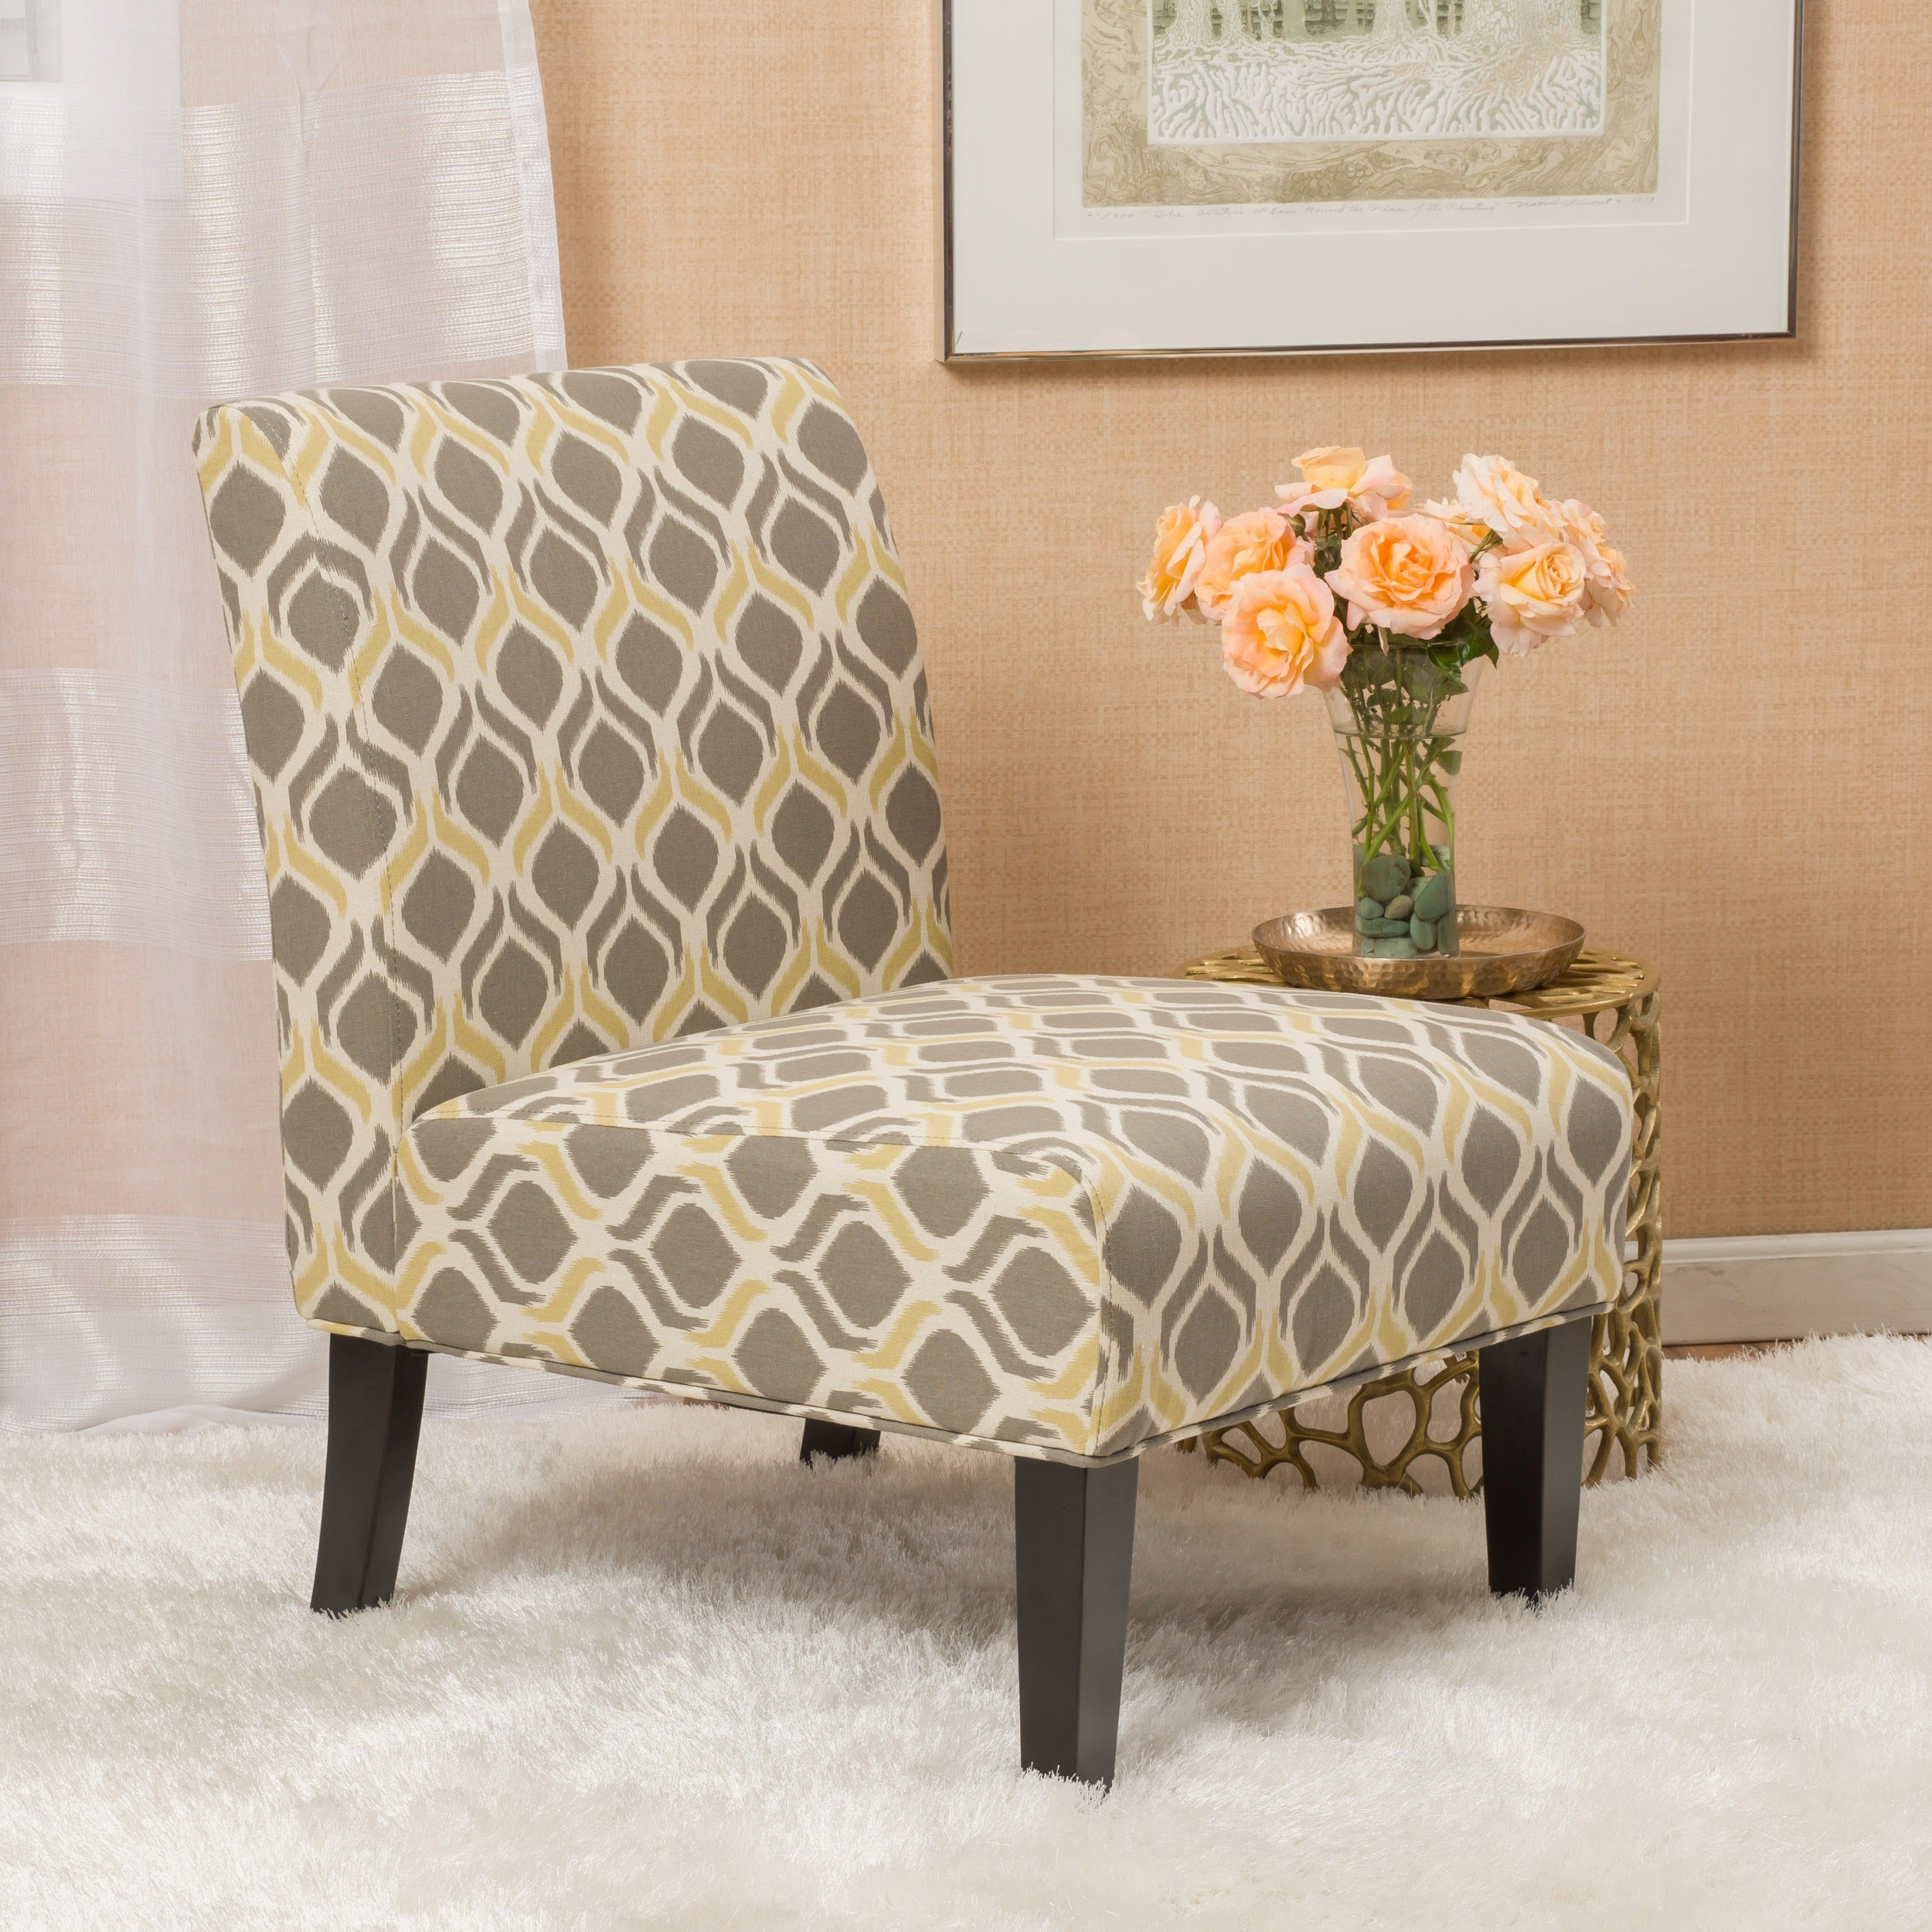 Genial Saloon Fabric Print Accent Chair By Christopher Knight